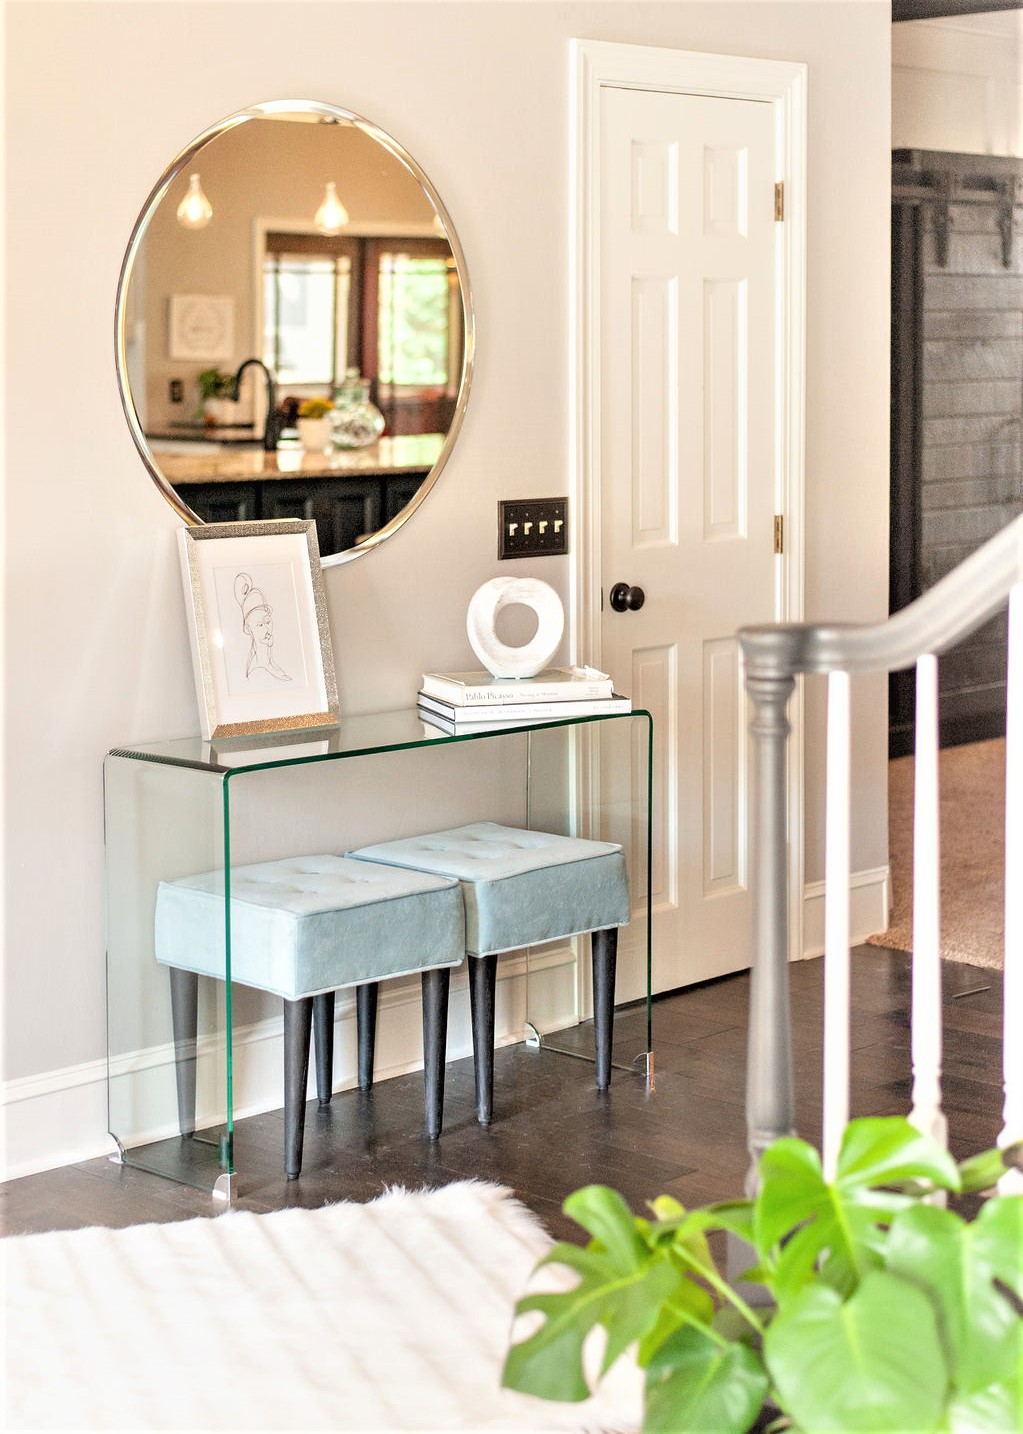 Blank-Canvas-Interior-Design-in-kansas-city-entry-with-table.jpg